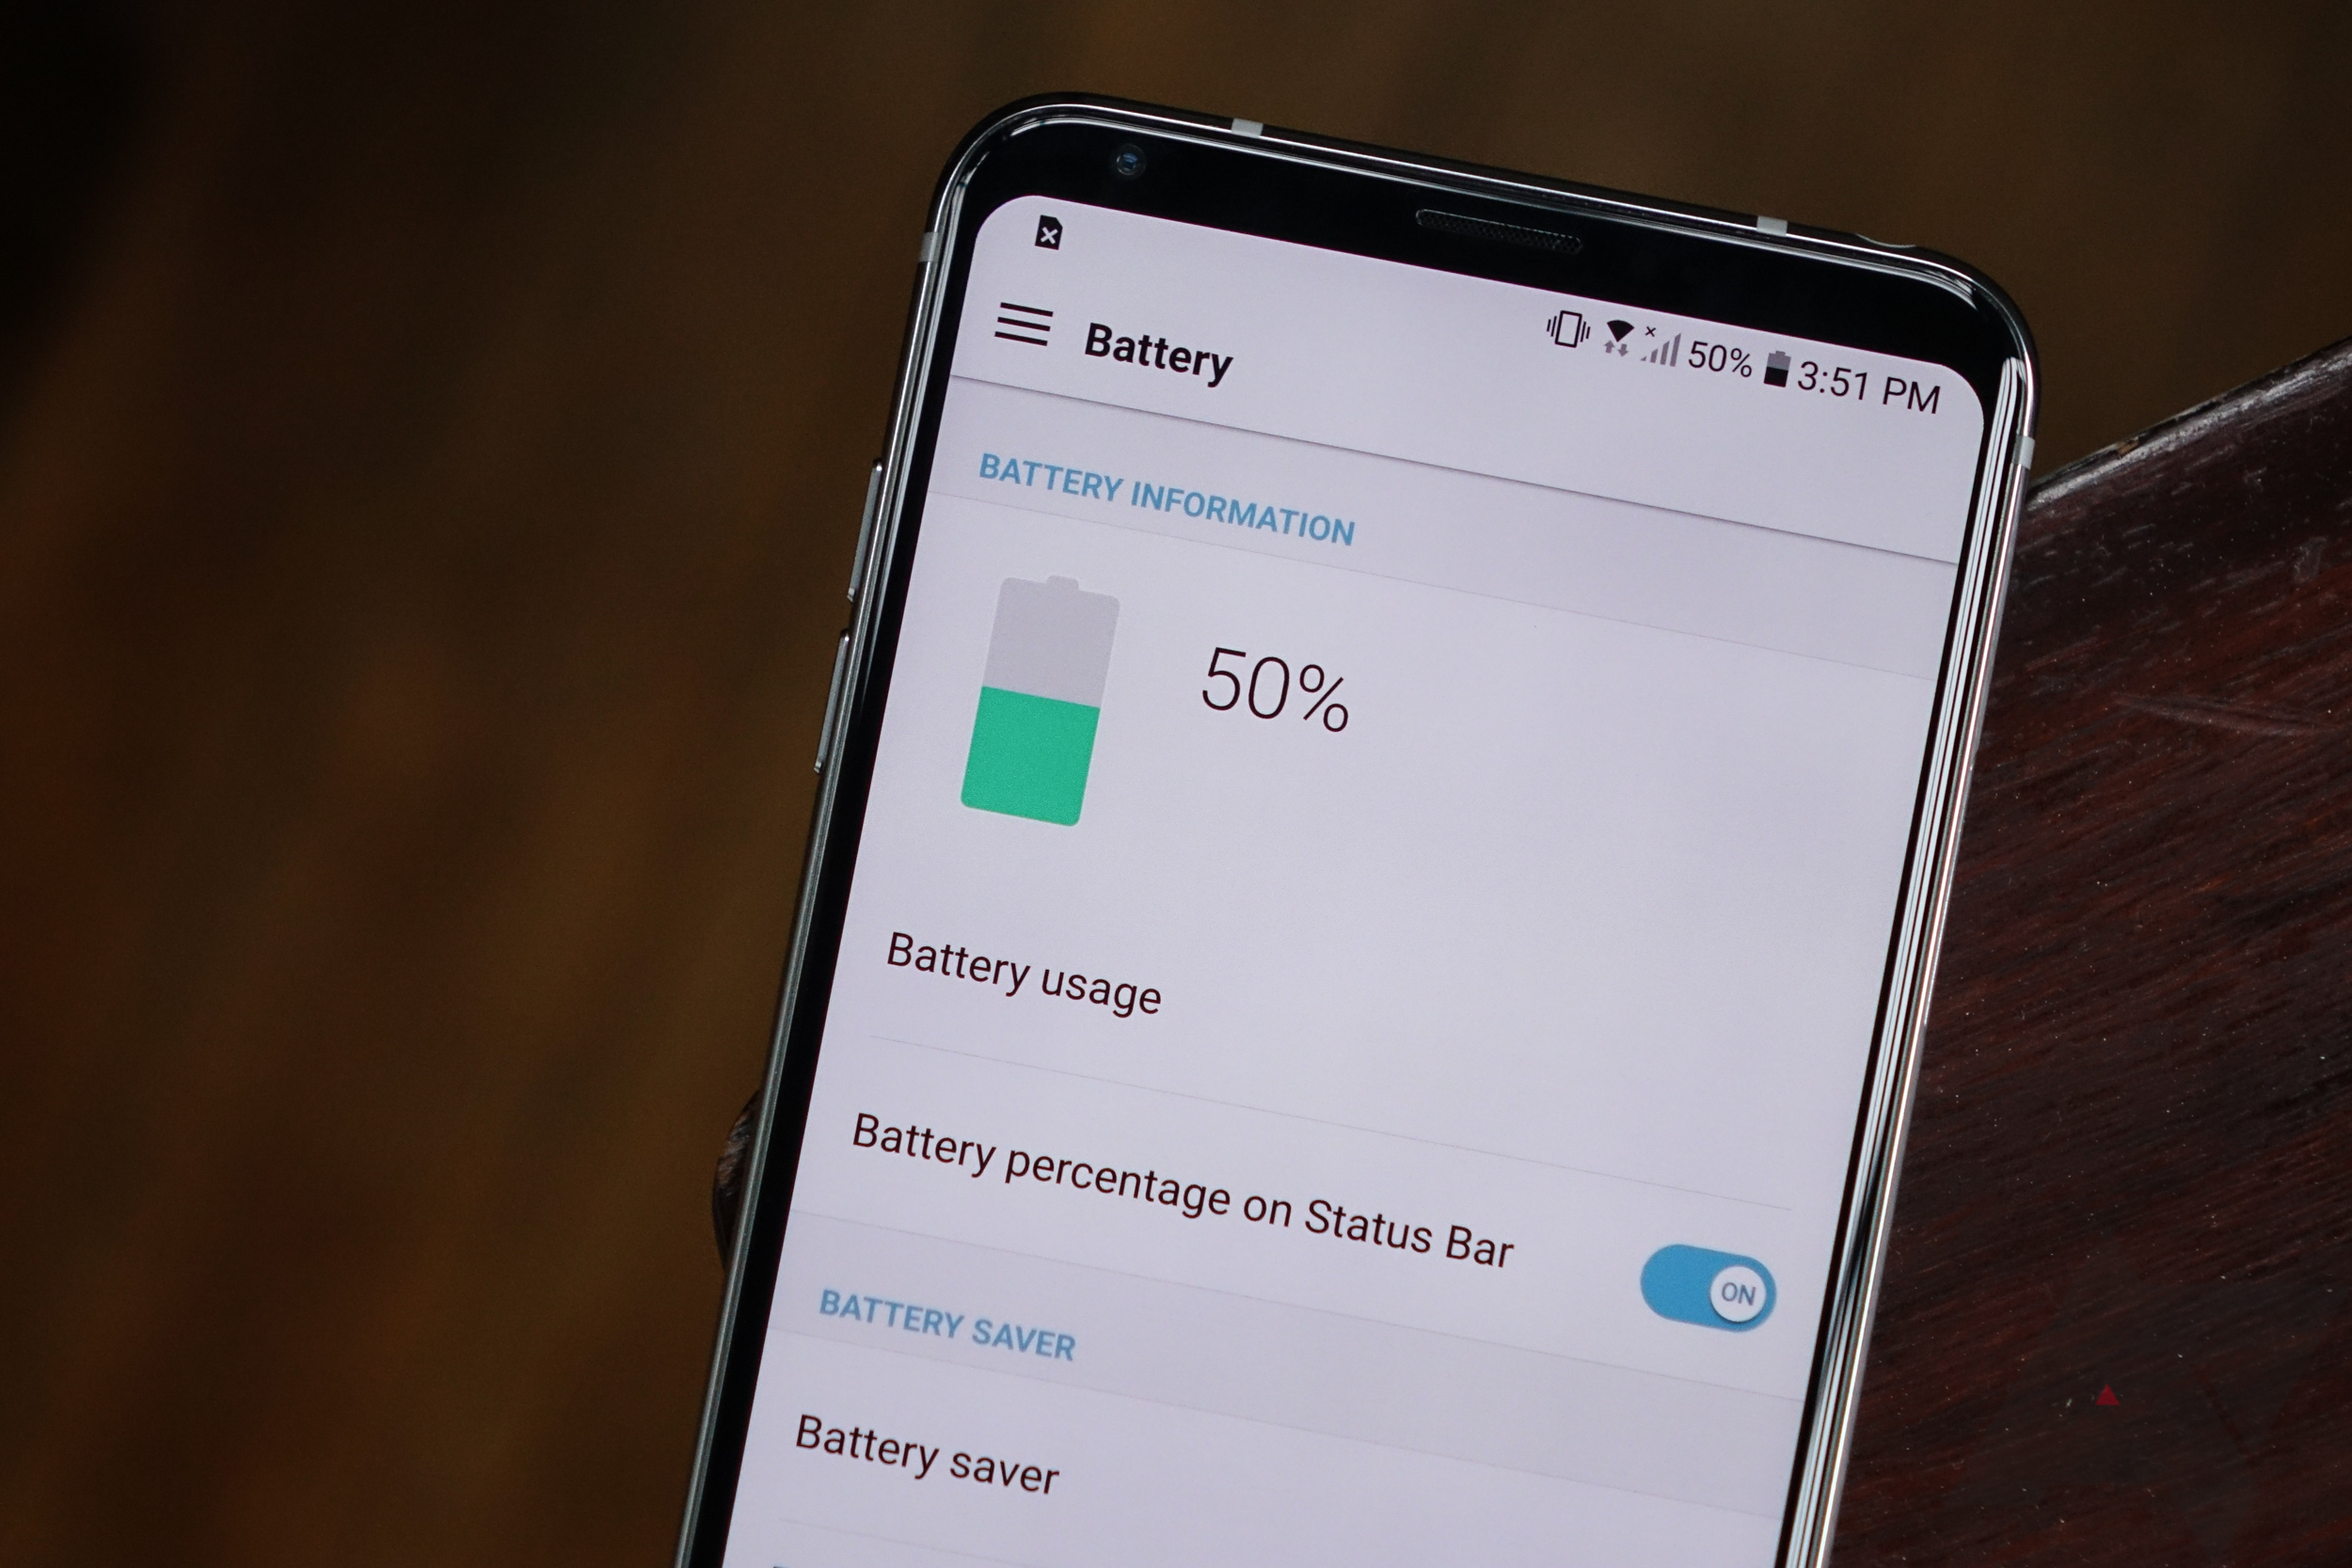 LG V30 review: Proof that LG can build a grown-up phone, mostly